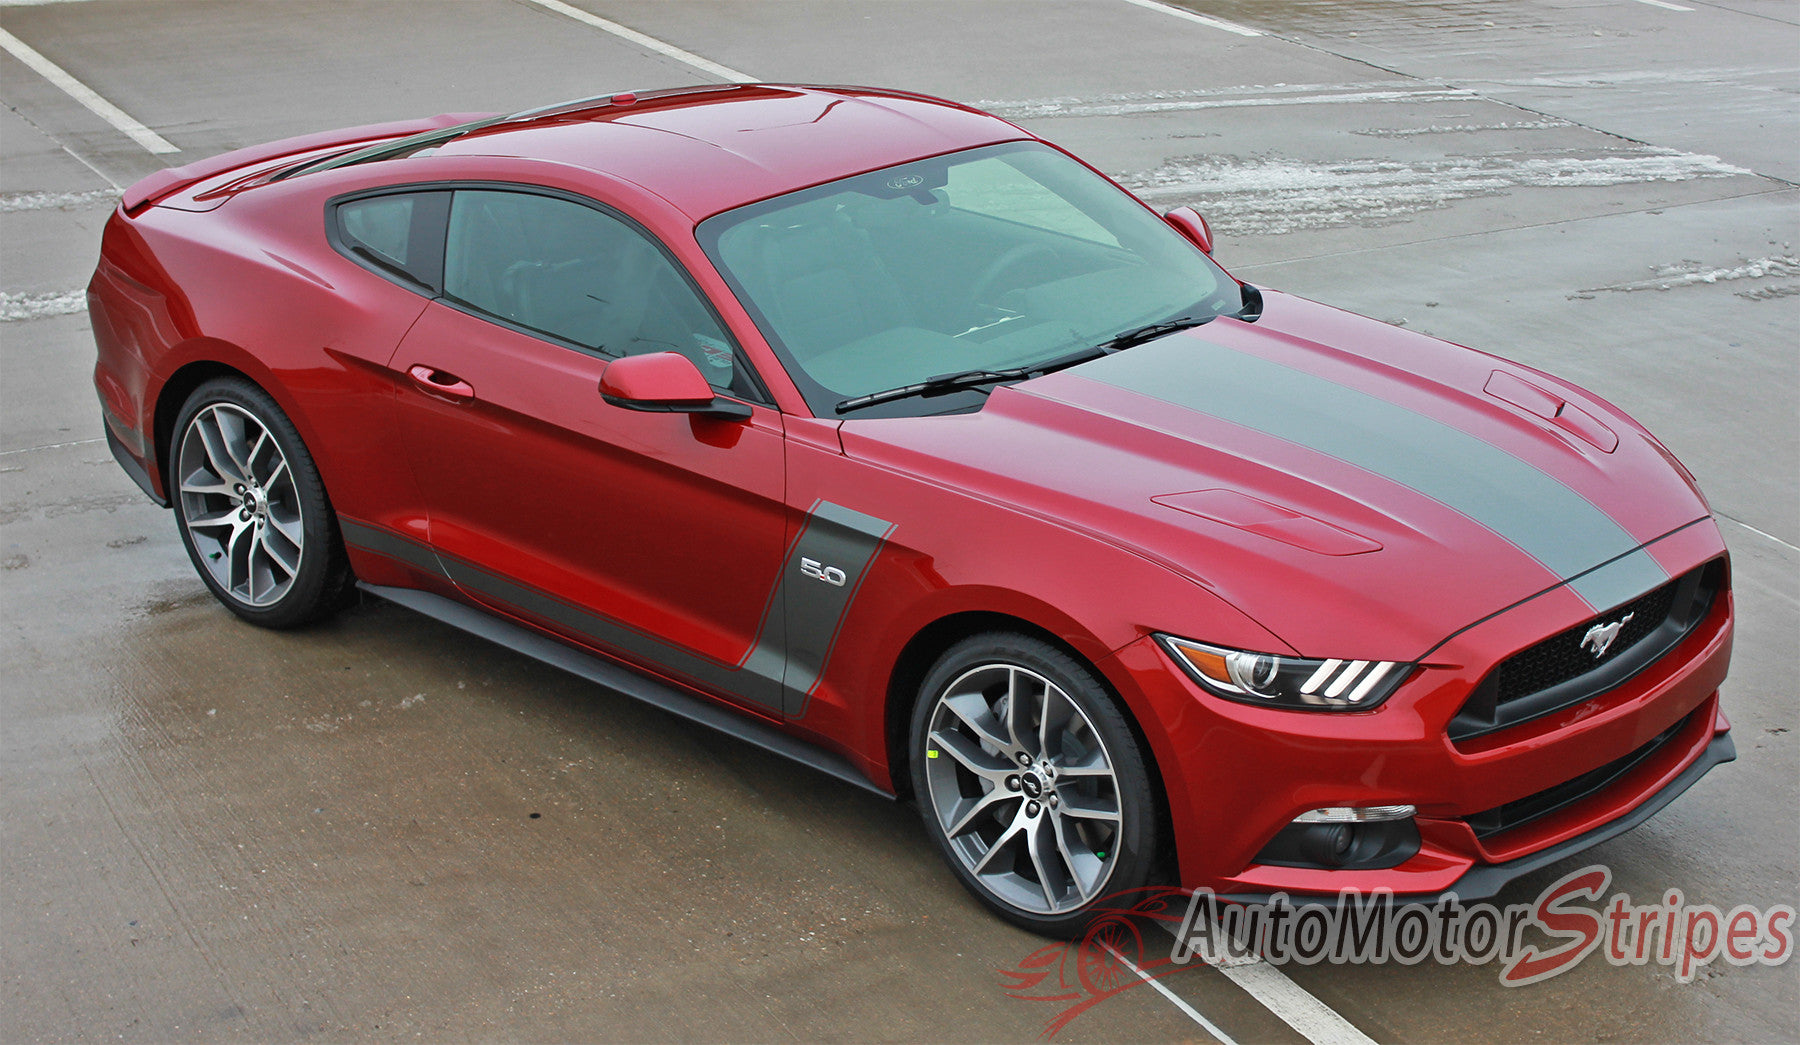 2016 Ford Mustang Boss 302S - Review, Interior, Engine